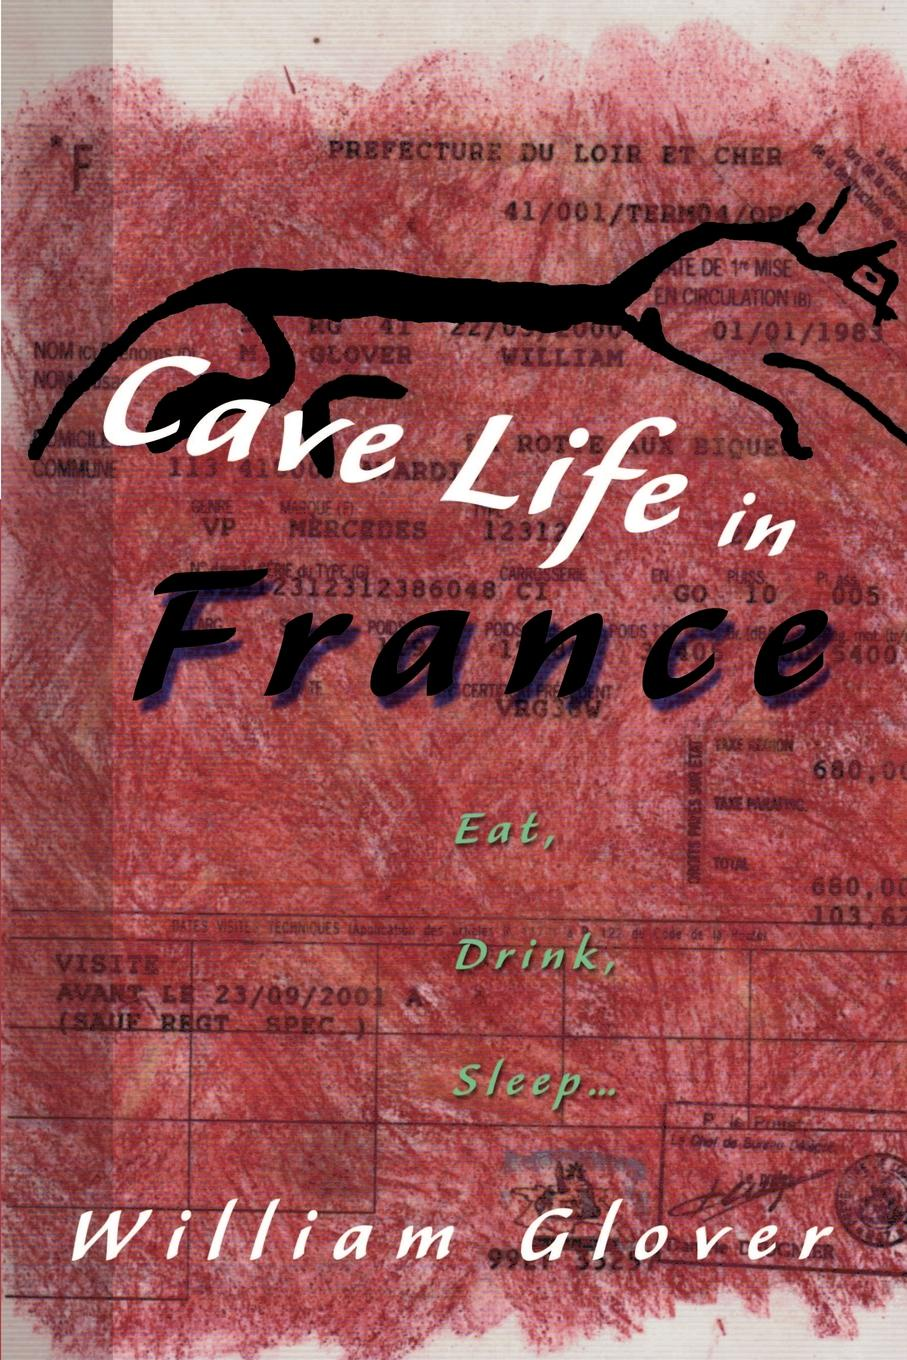 William Glover Cave Life in France. Eat, Drink, Sleep... hidden dangers in what we eat and drink